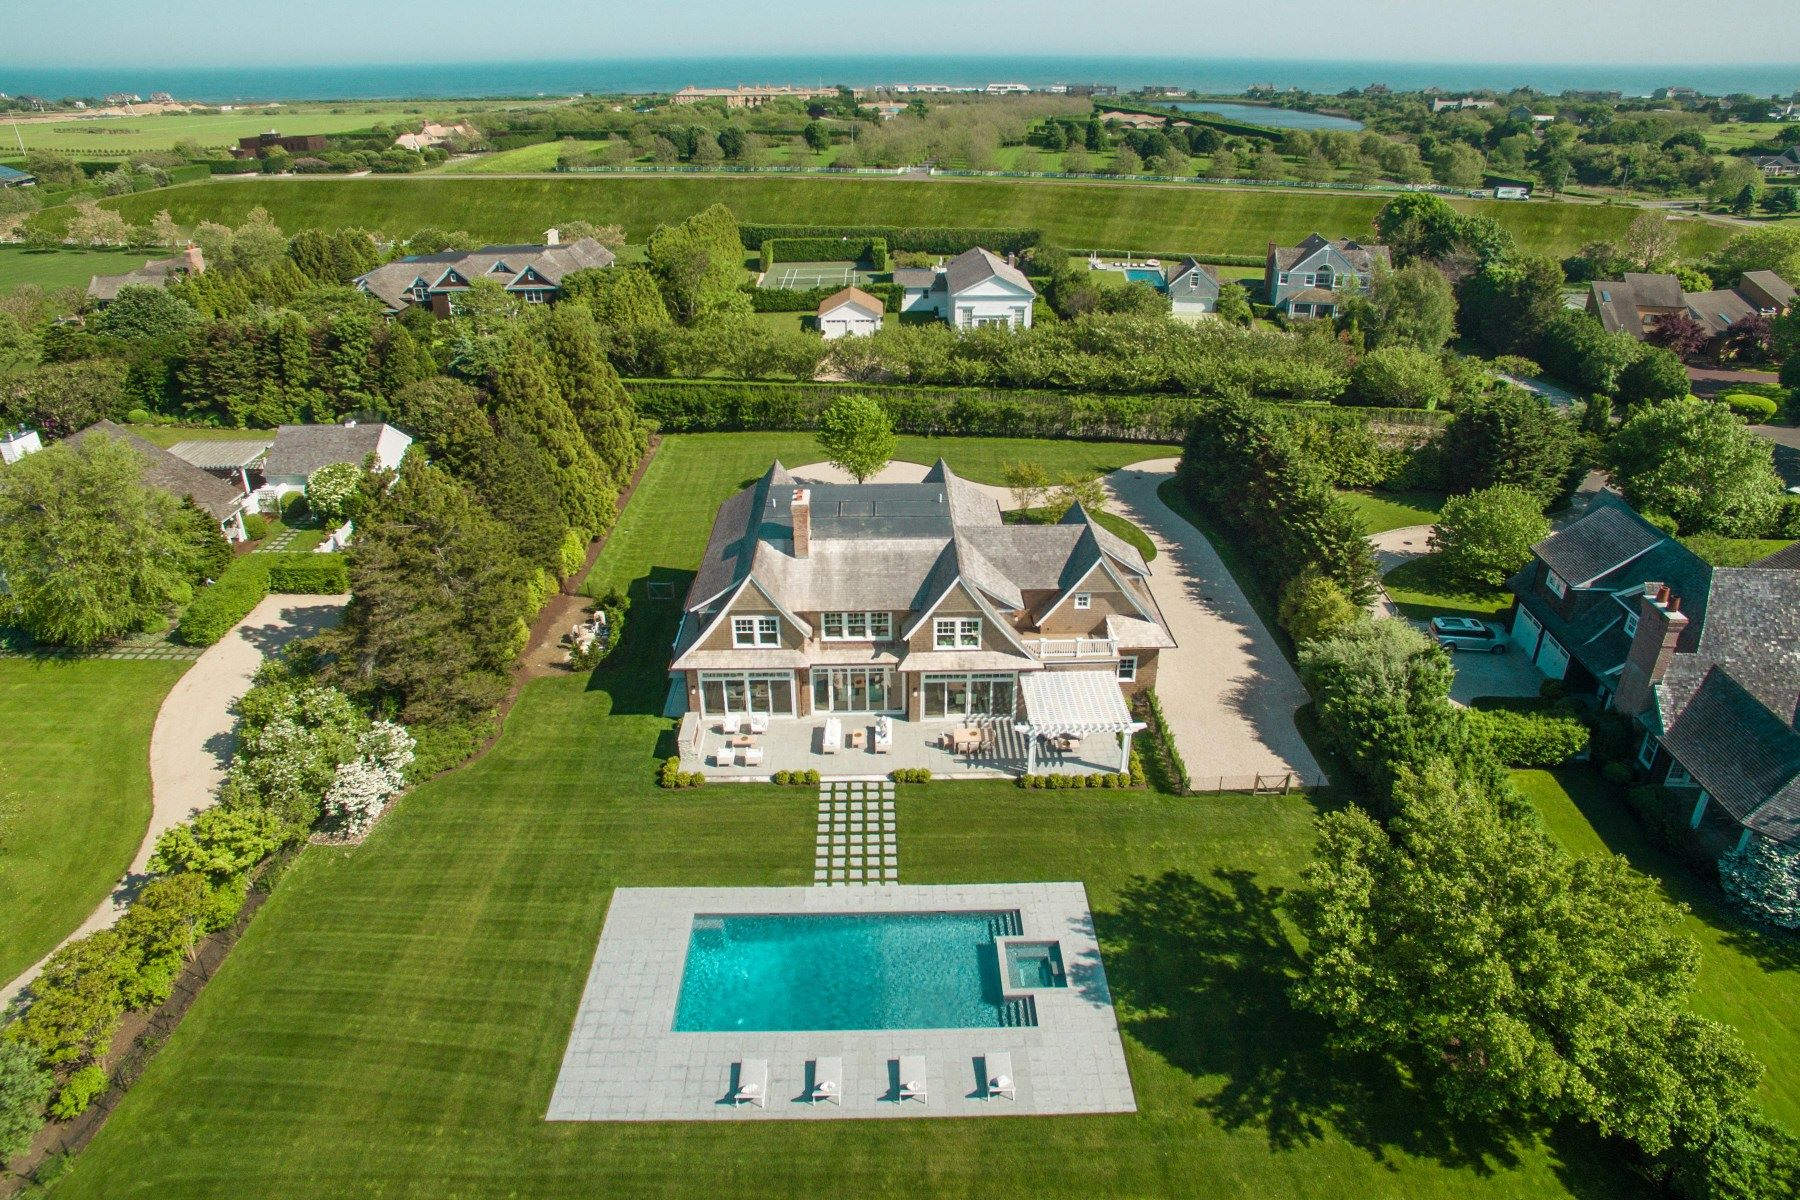 Additional photo for property listing at Sagaponack South of the Highway 46 Masefield Close Sagaponack, New York 11962 United States